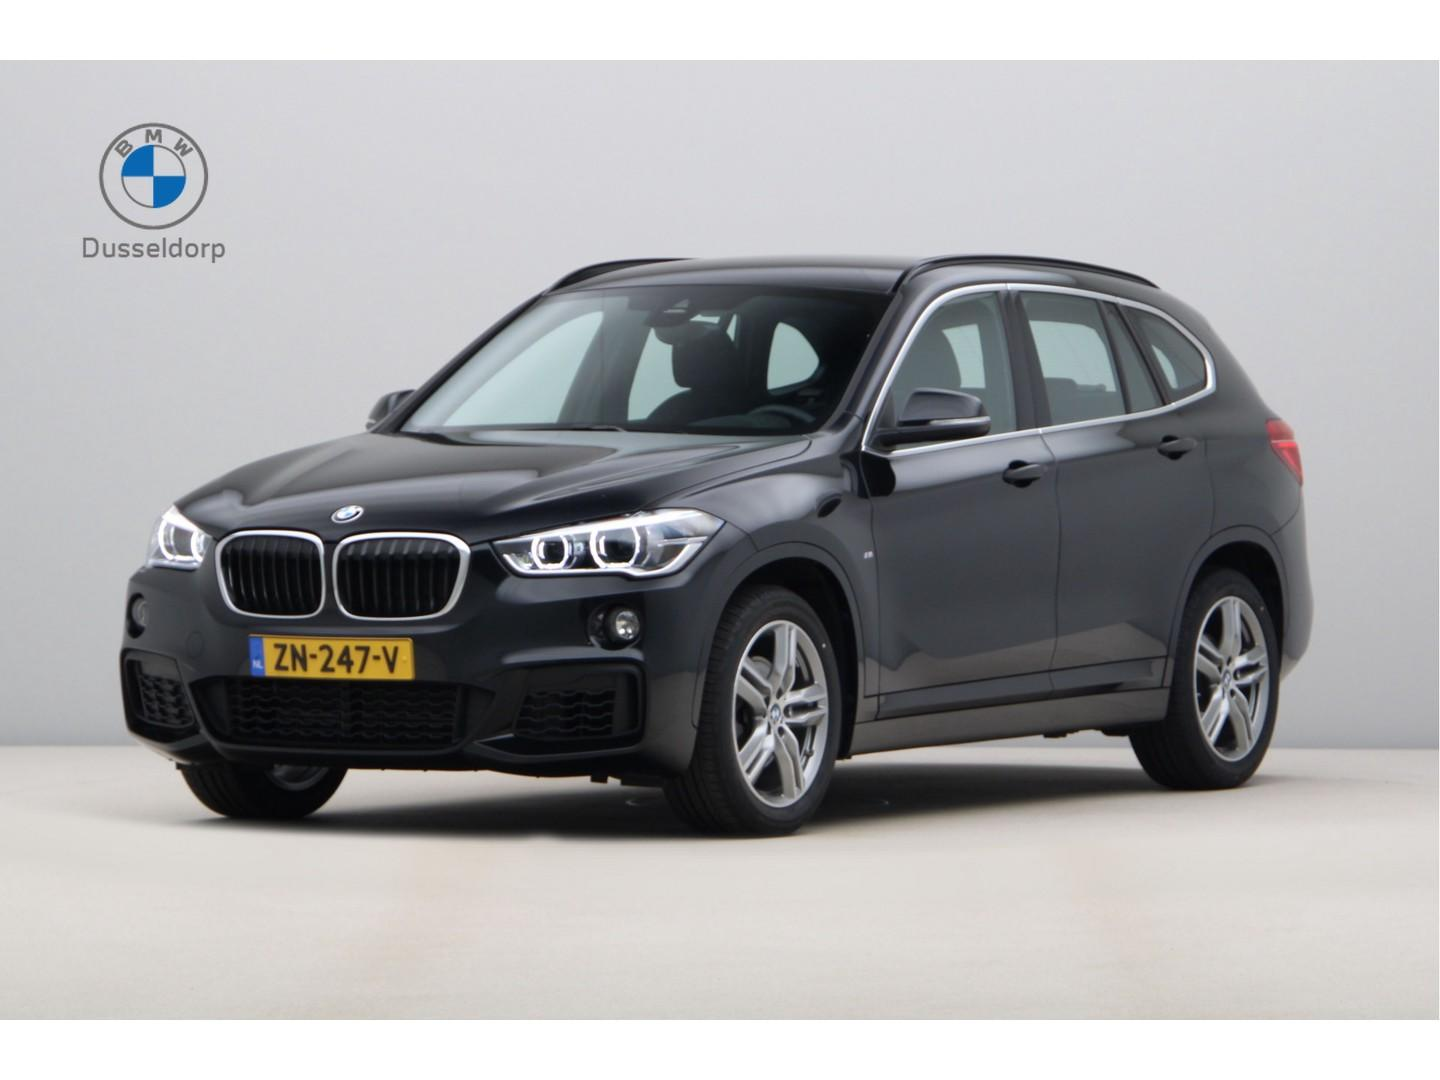 Bmw X1 Sdrive18i executive edition model m sport